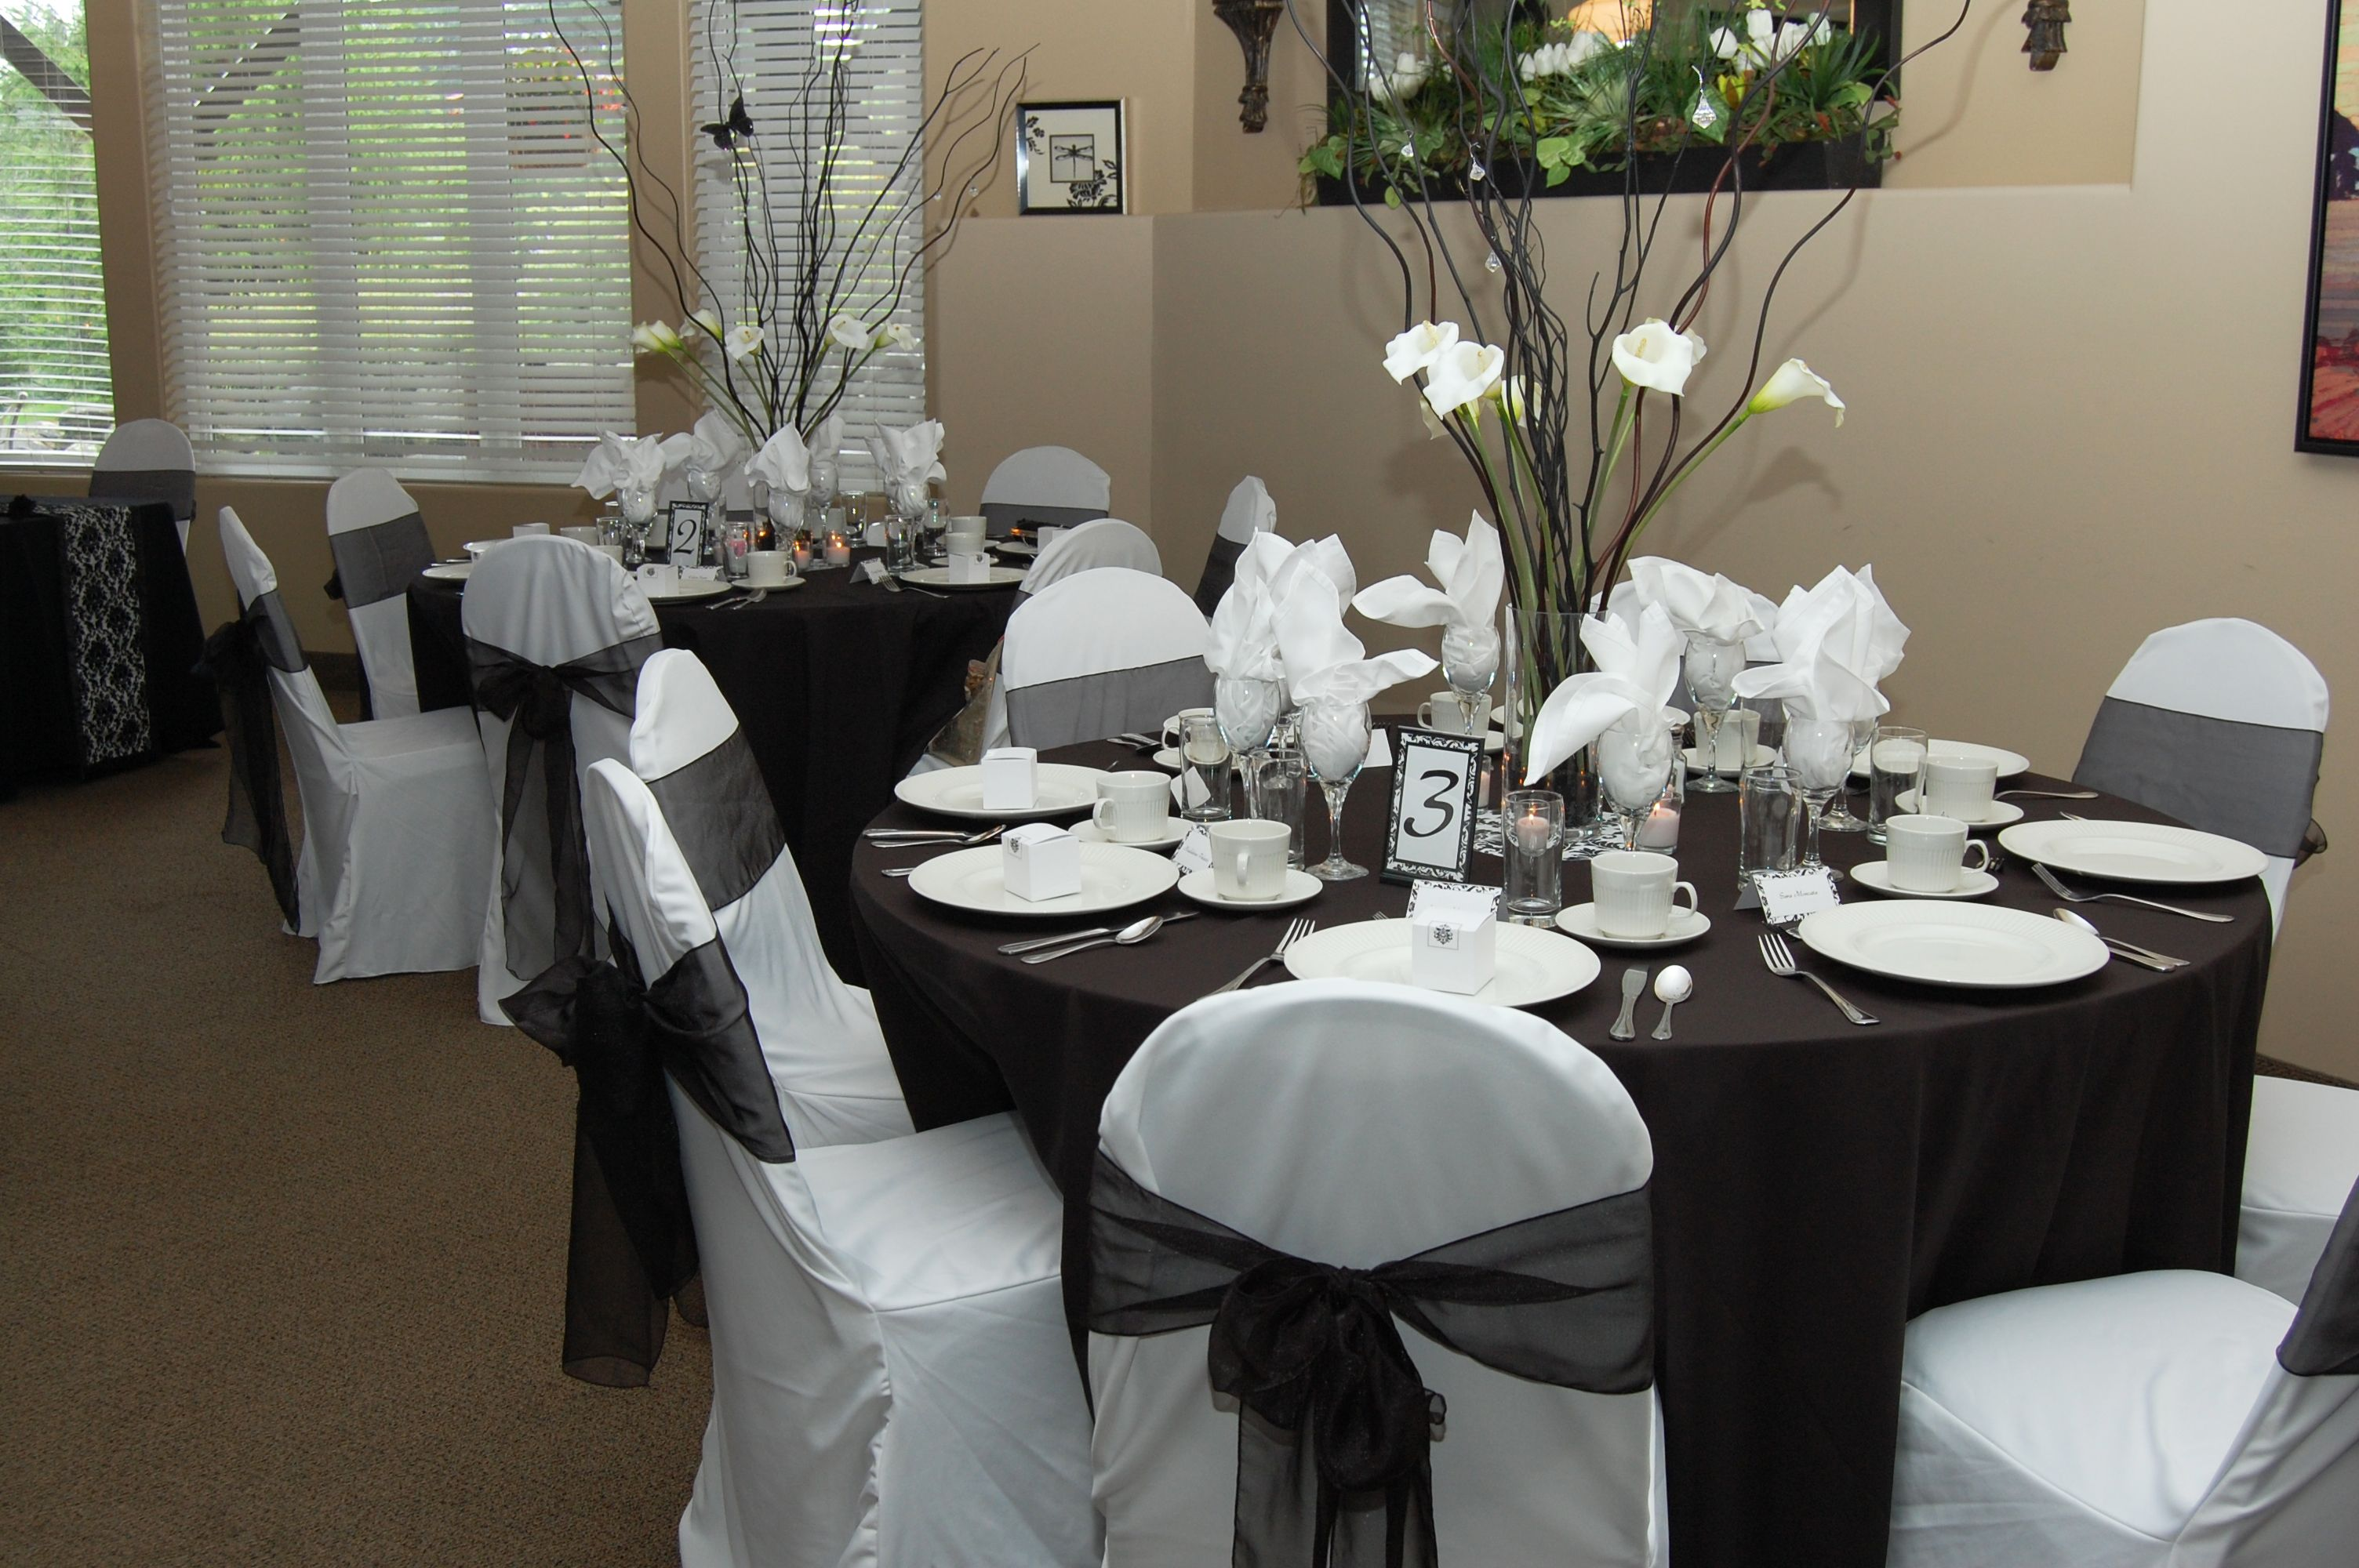 Chair Covers Make Such A Difference At This Wedding We Used Plain White Covers With An Elegant Black S White Wedding Decorations Black And White Theme Wedding